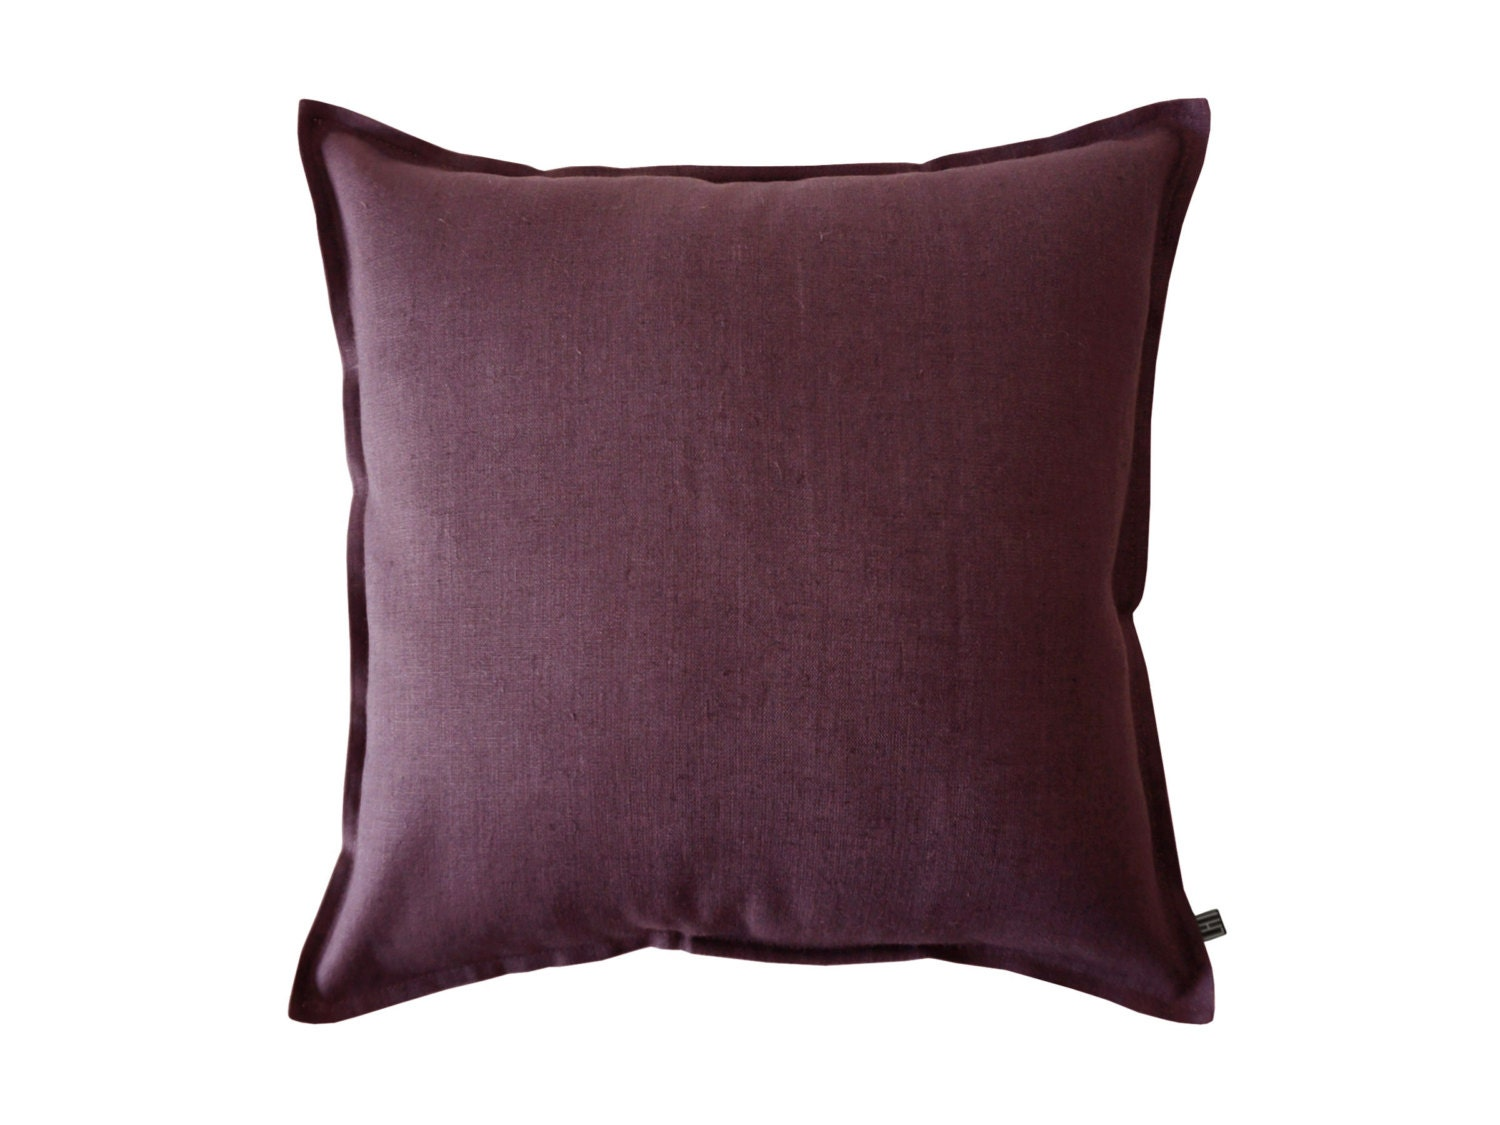 Soft Decorative Throw Pillows : Throw pillow cover Soft eggplant linen by Lovely by LovelyHomeIdea